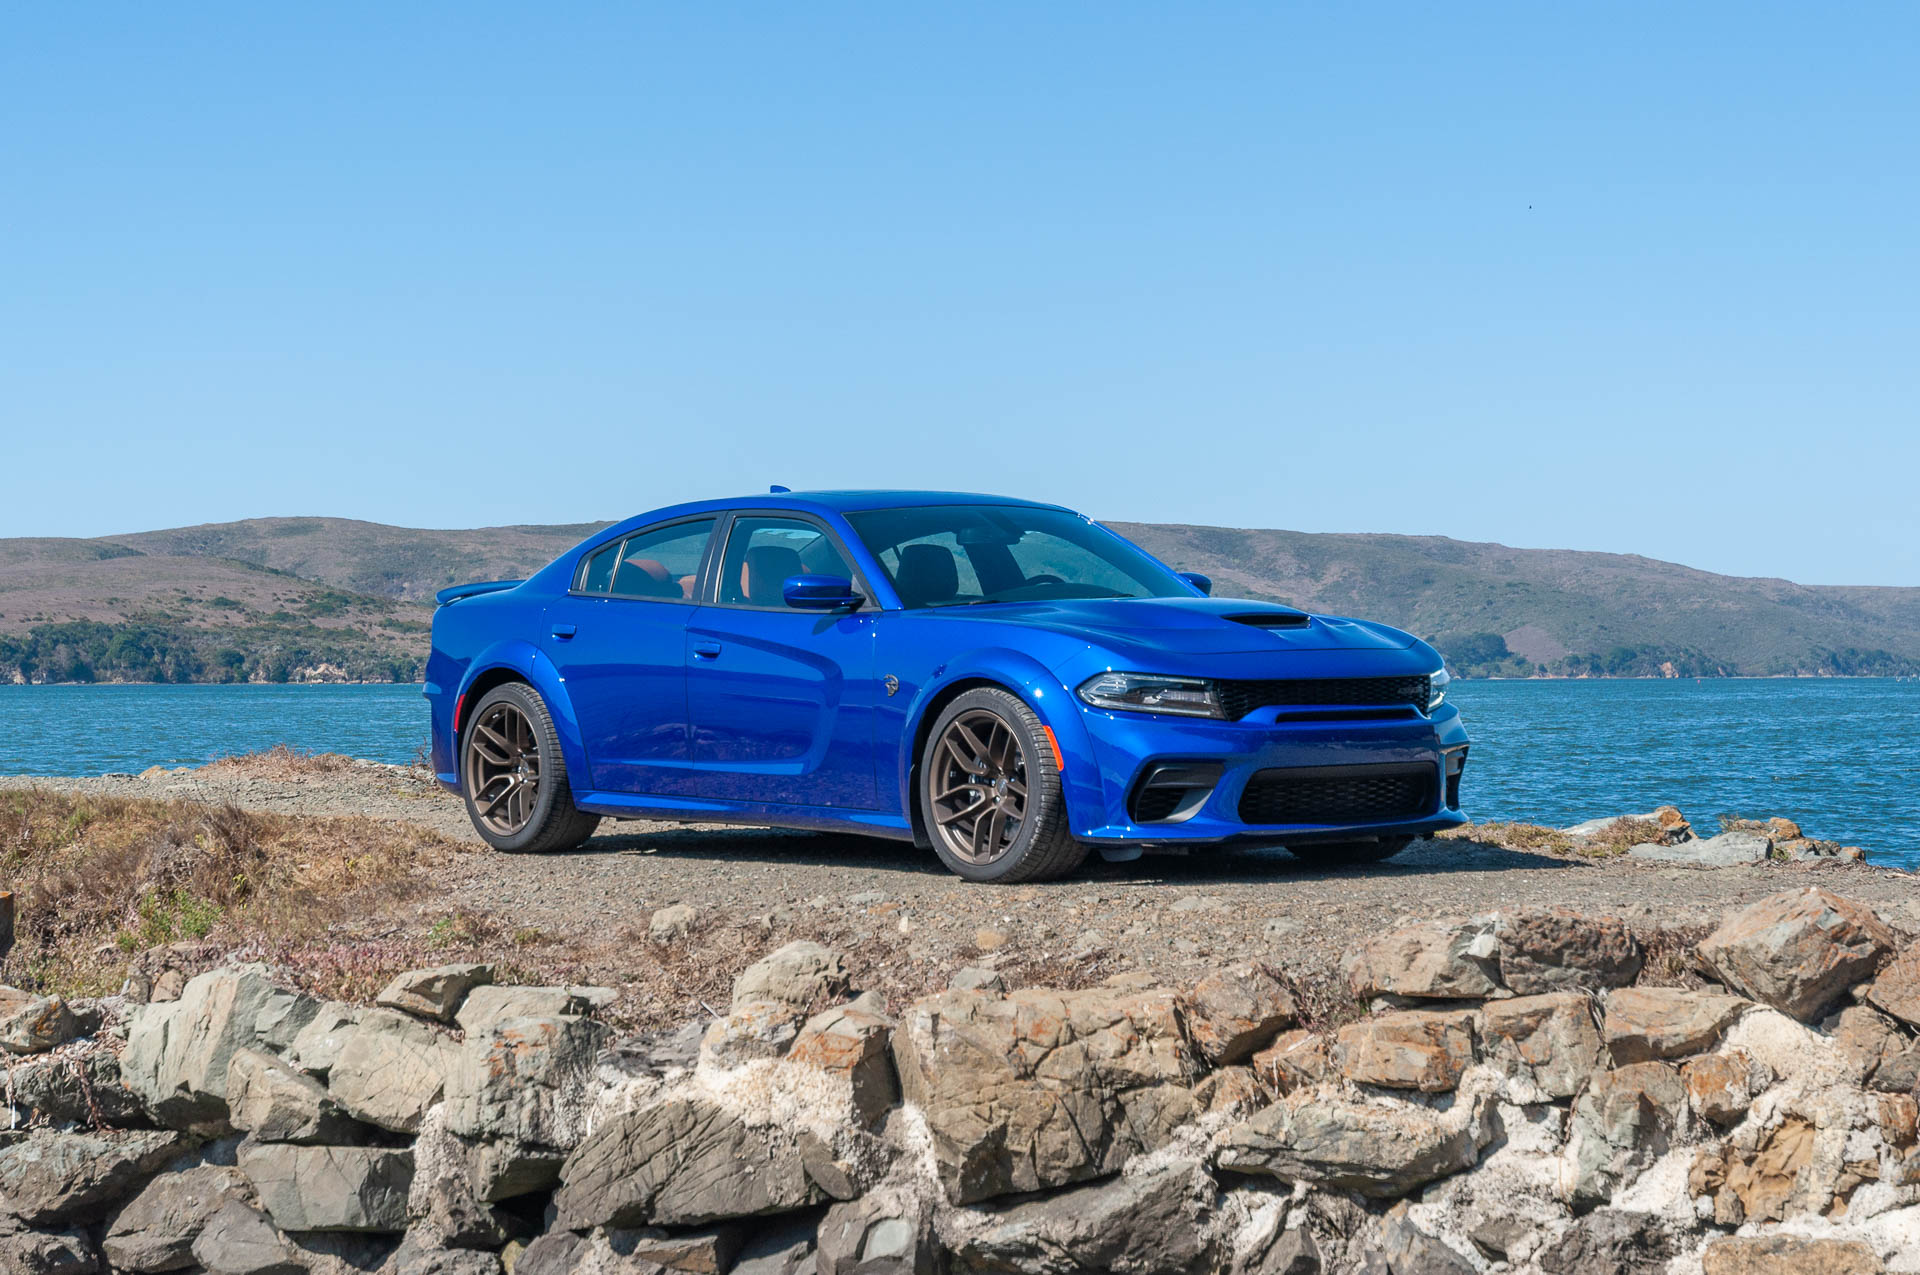 First Drive Review The 2020 Dodge Charger Hellcat Widebody Is Thick With Excess